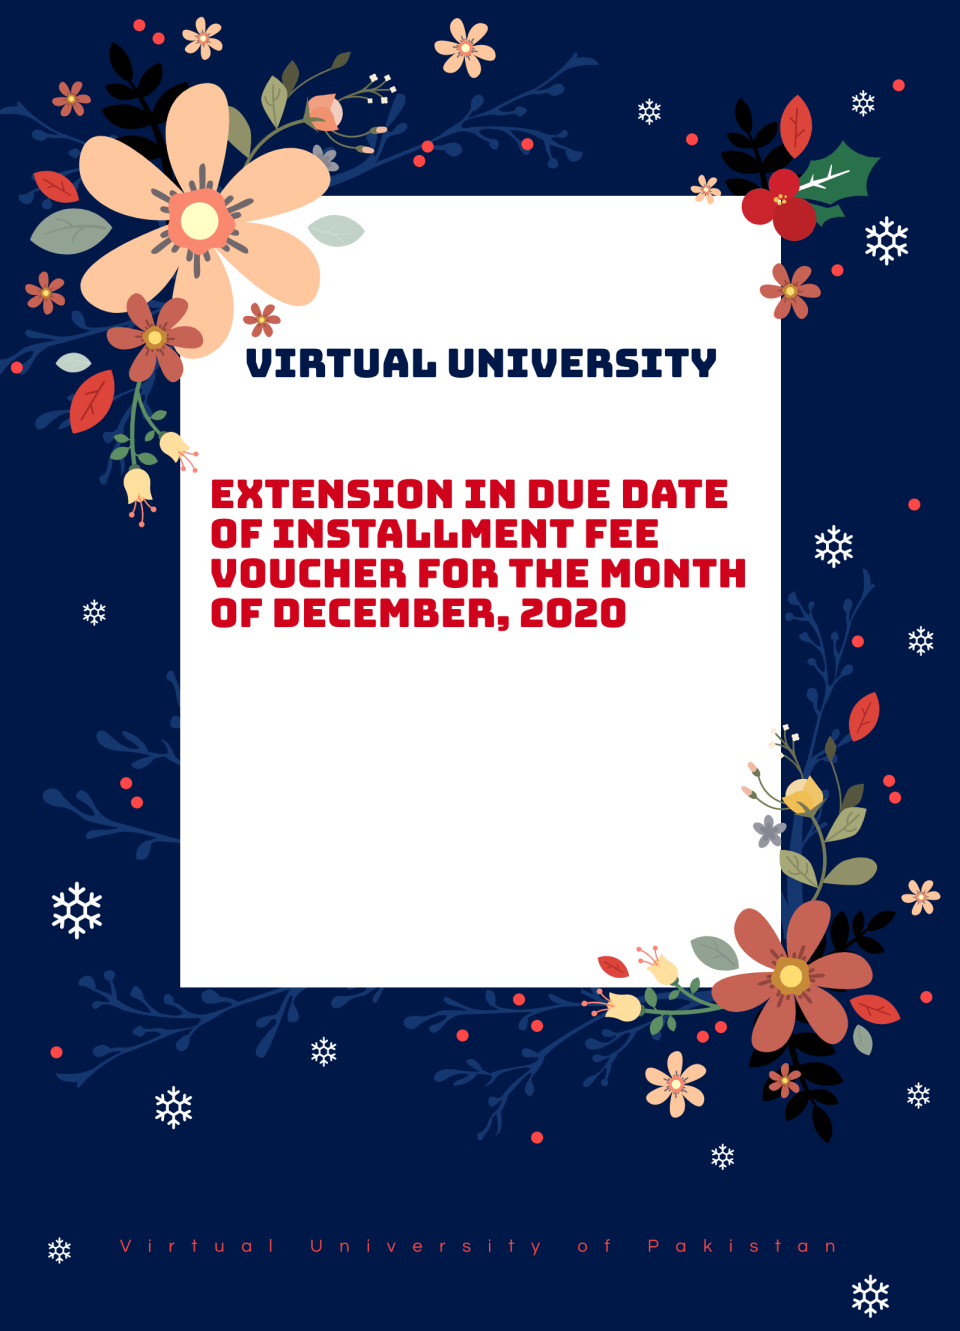 Extension In Due Date Of Installment Fee Voucher For The Month Of December, 2020